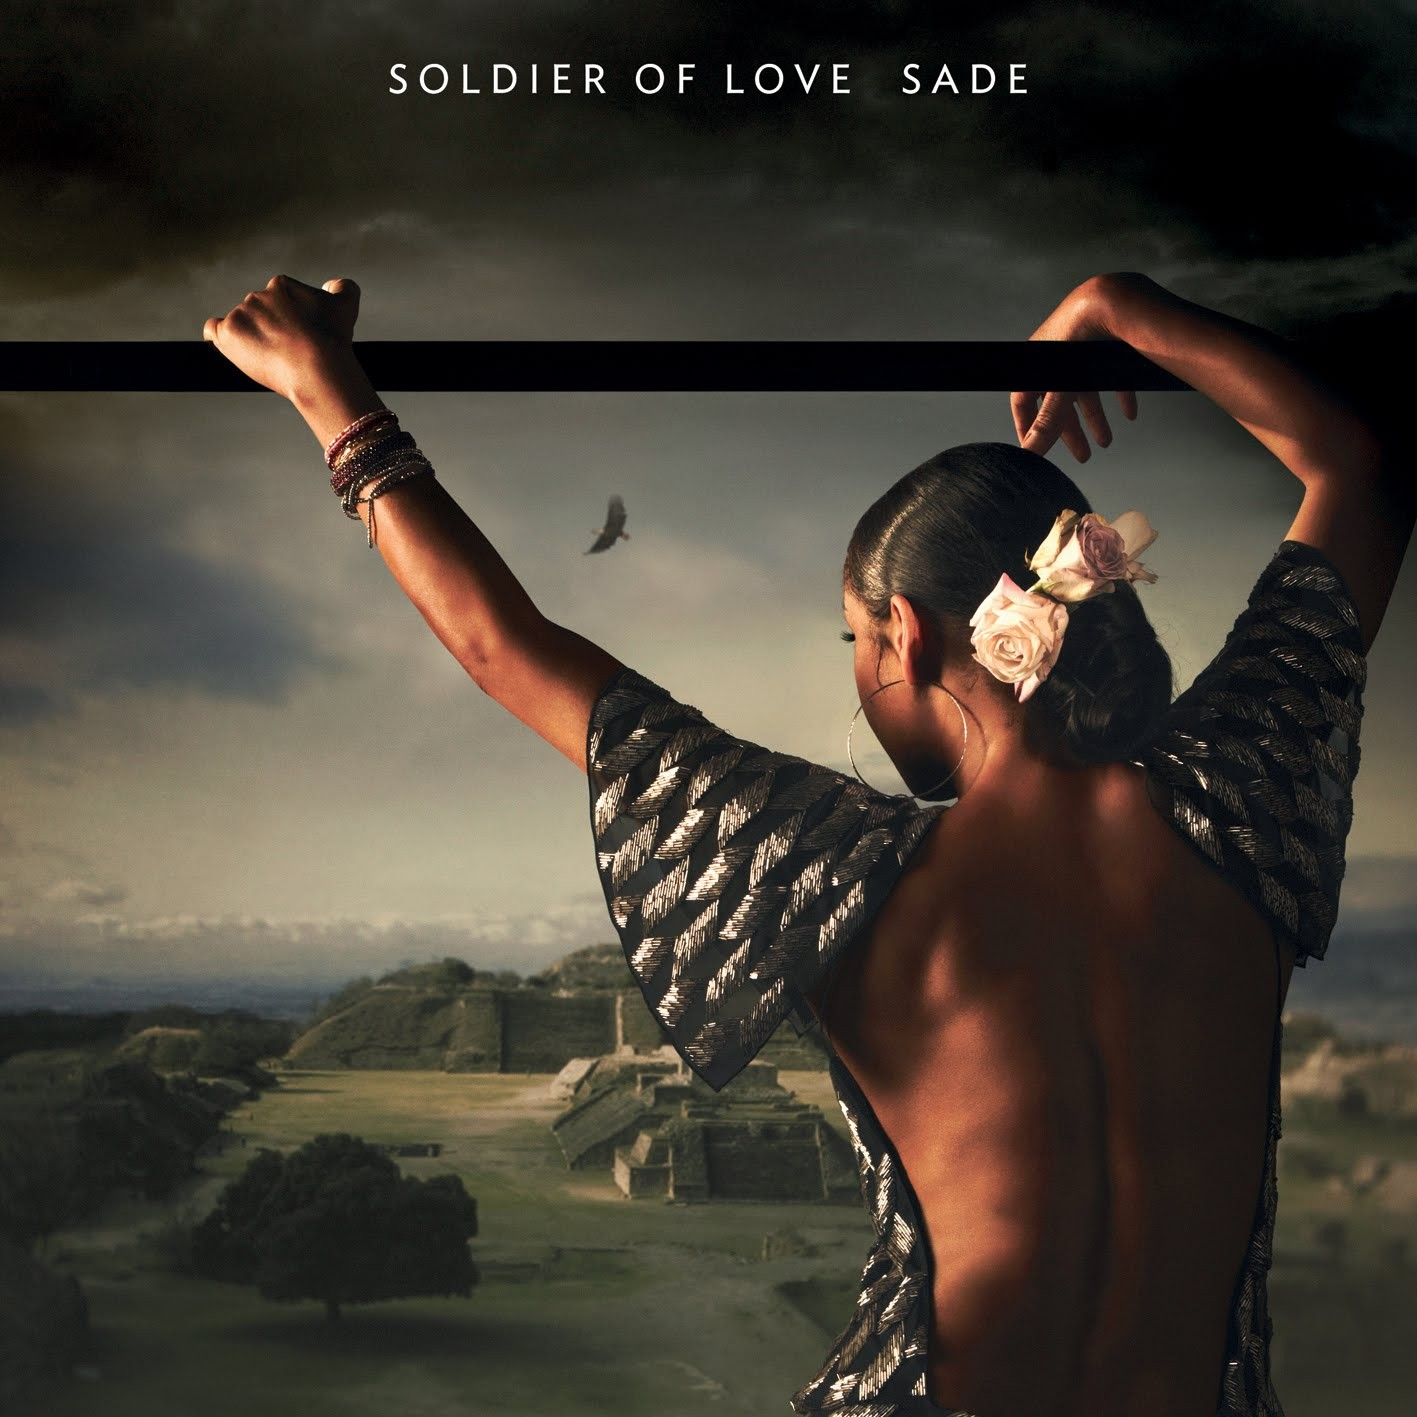 Sade Wallpaper http://wallpaperjunctiondownload.blogspot.com/2011/03/soldier-of-love.html